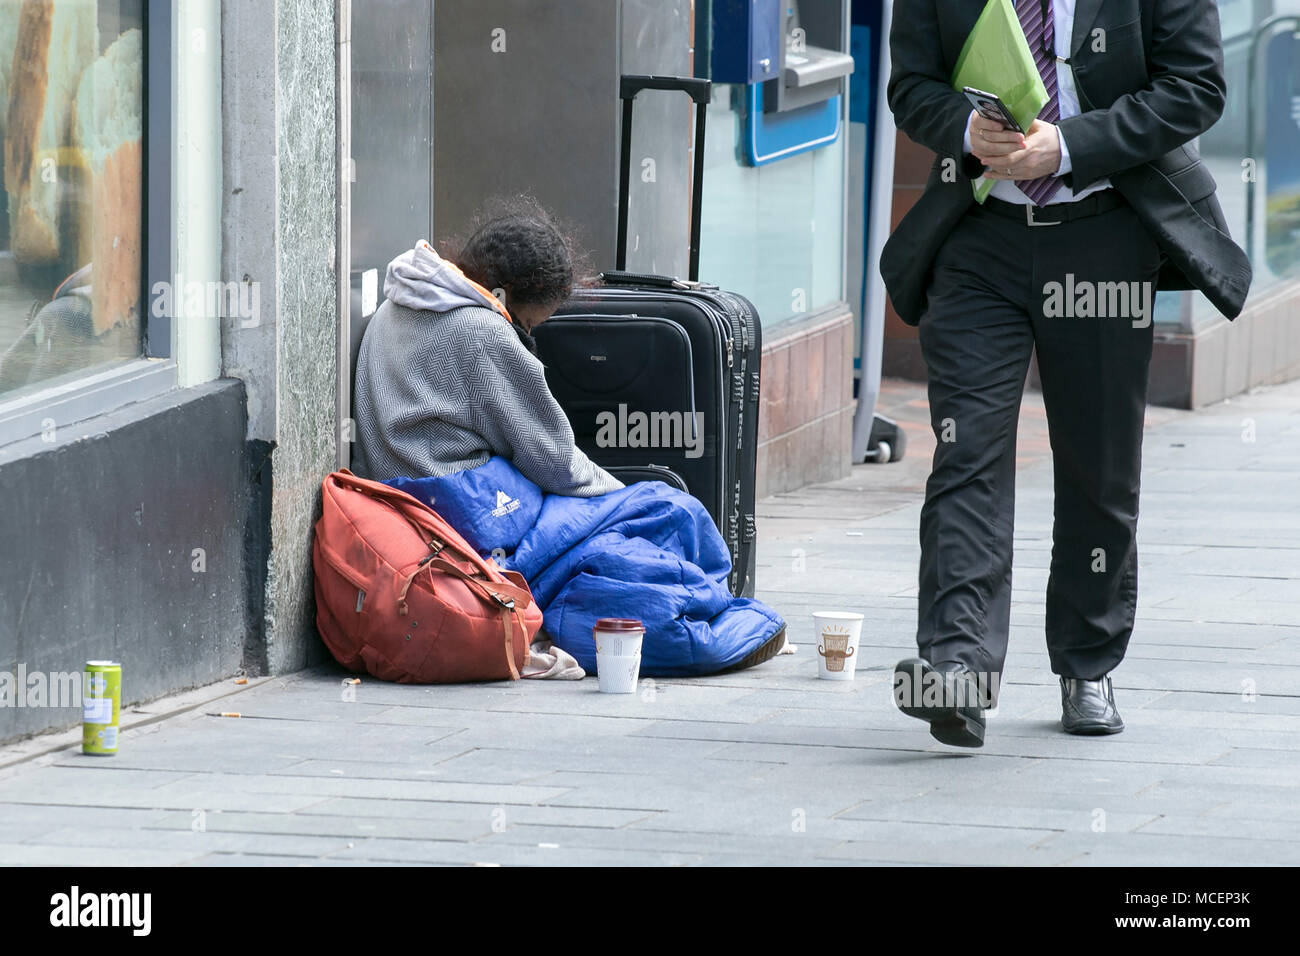 homeless homelessness beg beggar tramp swep rough sleeper sleeping cold street poor hungry person bag lone alone begging suffer sadness - Stock Image